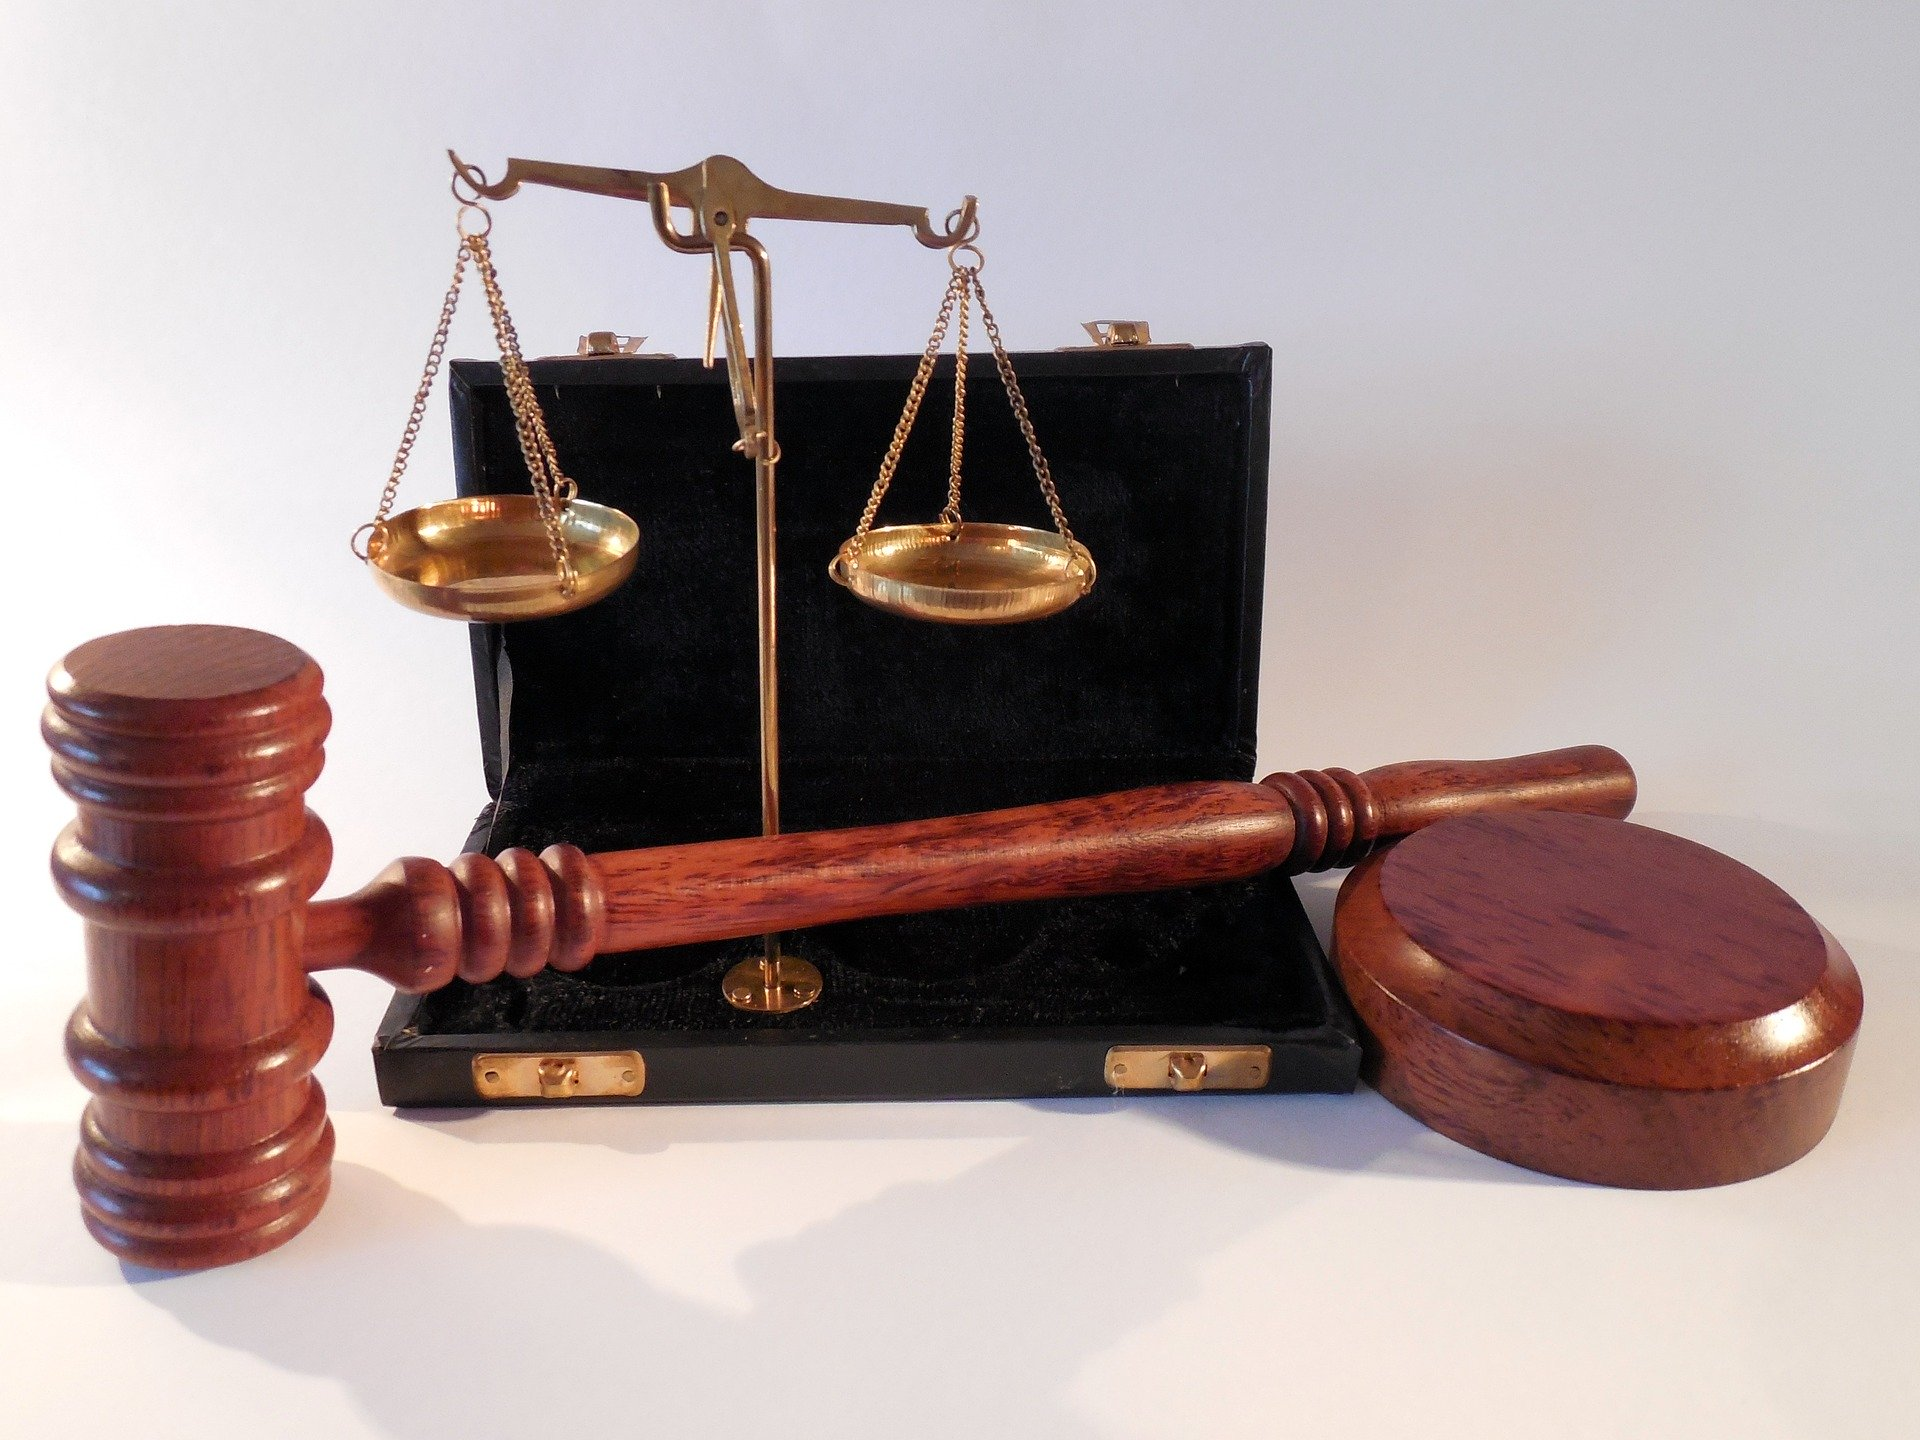 A hammer and scales illustrative  the judicial system. | Source: Pixabay.